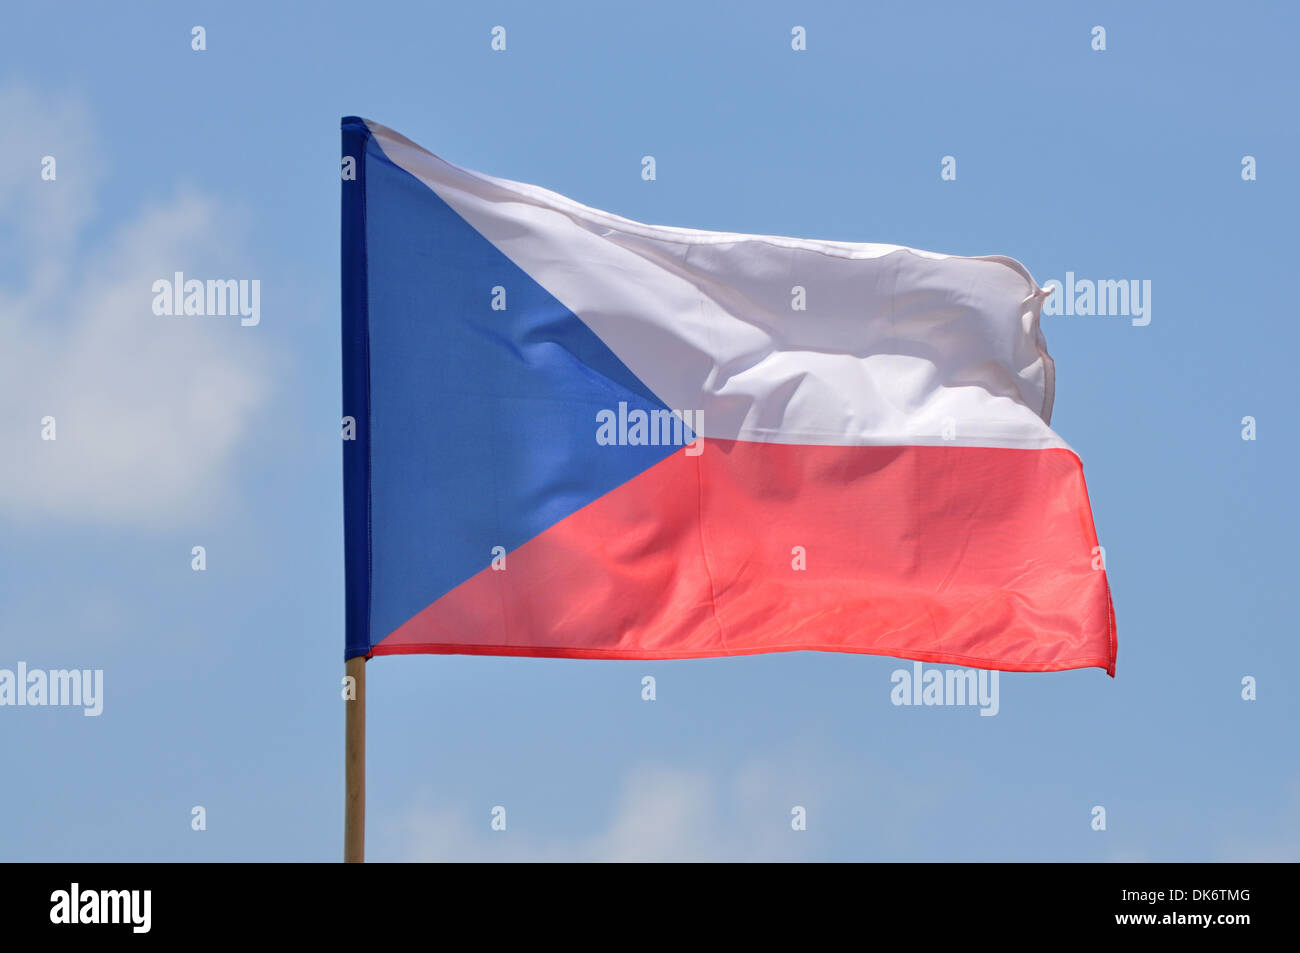 Flag of Czech Republic - Stock Image